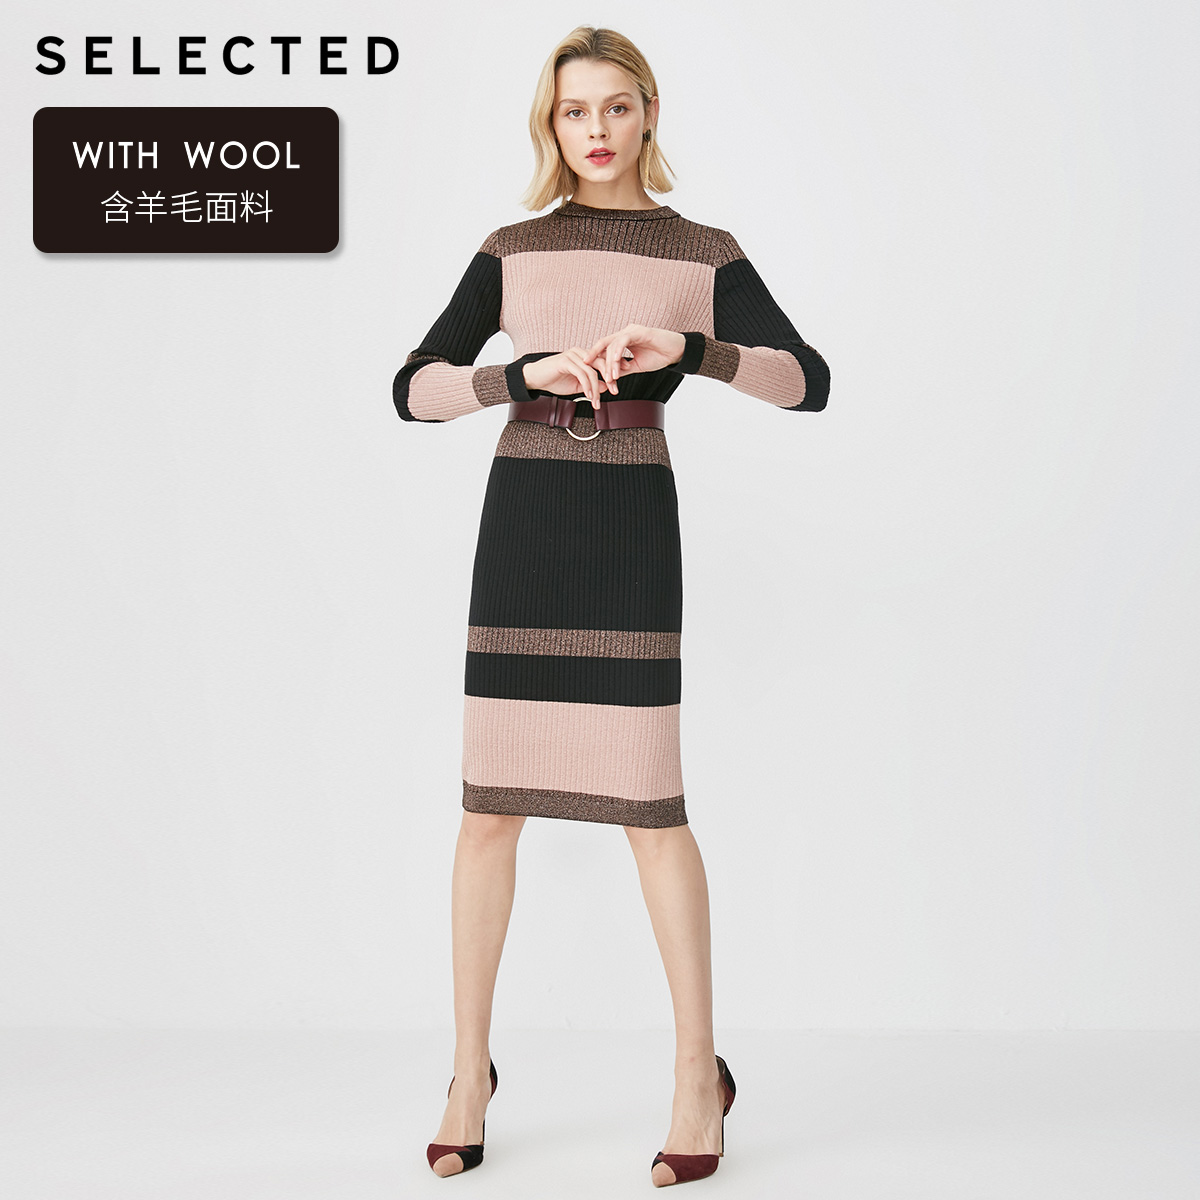 SELECTED Wool blend Splice Long sleeved Knitted Dress S 419146511